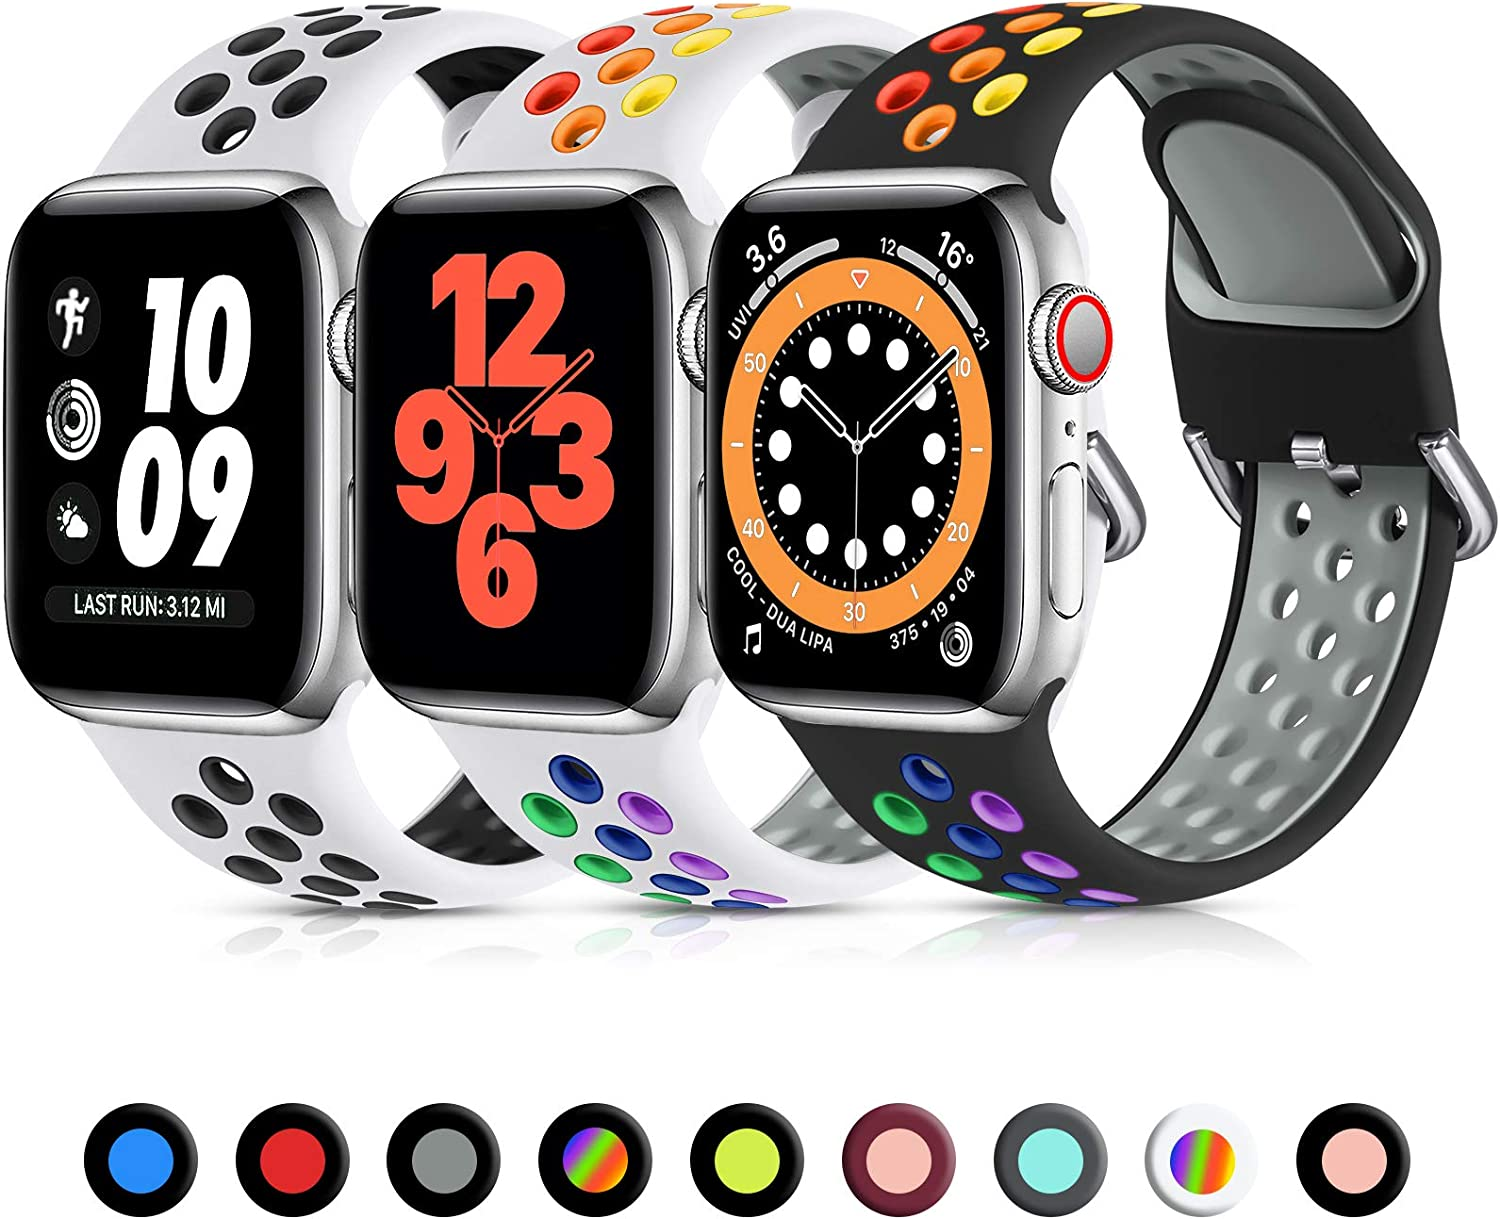 Lerobo 3 Pack Bands Compatible for Apple Watch Bands 44mm 42mm 40mm 38mm, Soft Silicone Sport Strap Breathable Replacement Band for Apple Watch SE iWatch Series 6, Series 3,Series 5 4 3 2 1 Women Men